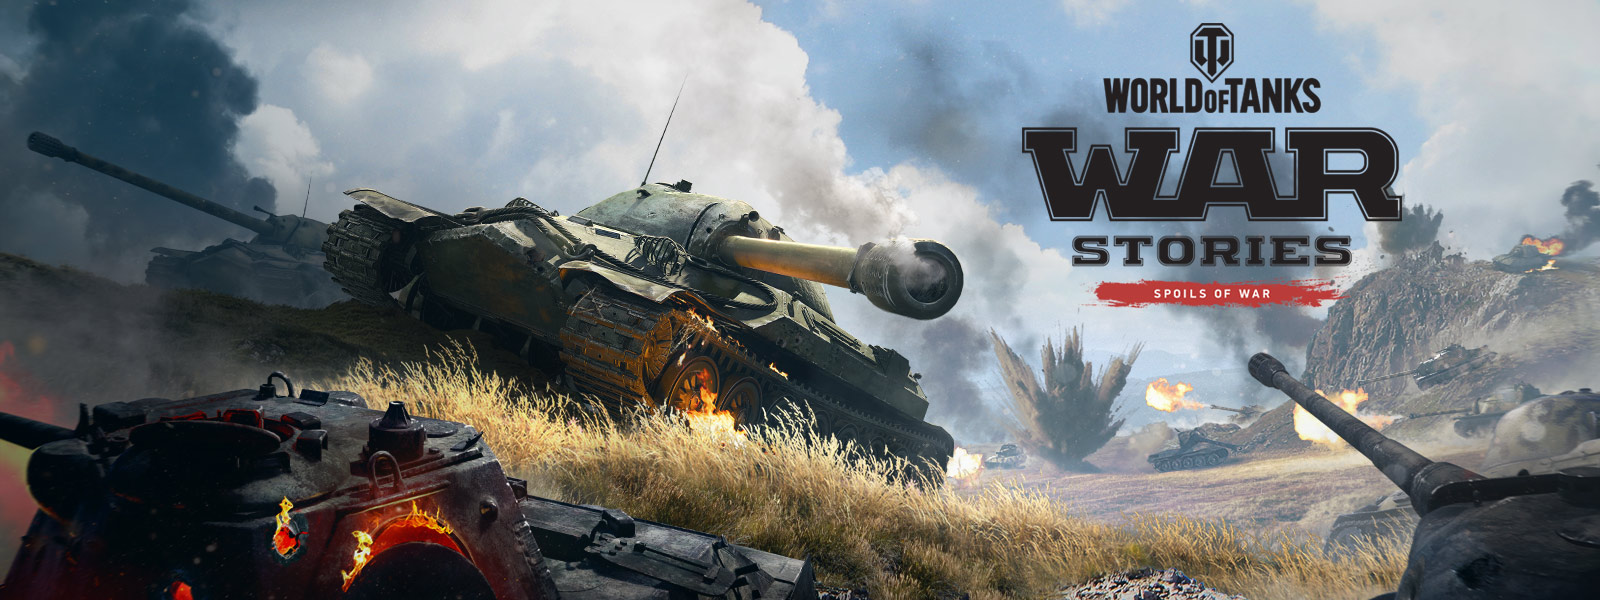 World of Tanks War Stories Spoils of War, To tanks kører op ad en bakke med flere tanks, der skyder i baggrunden